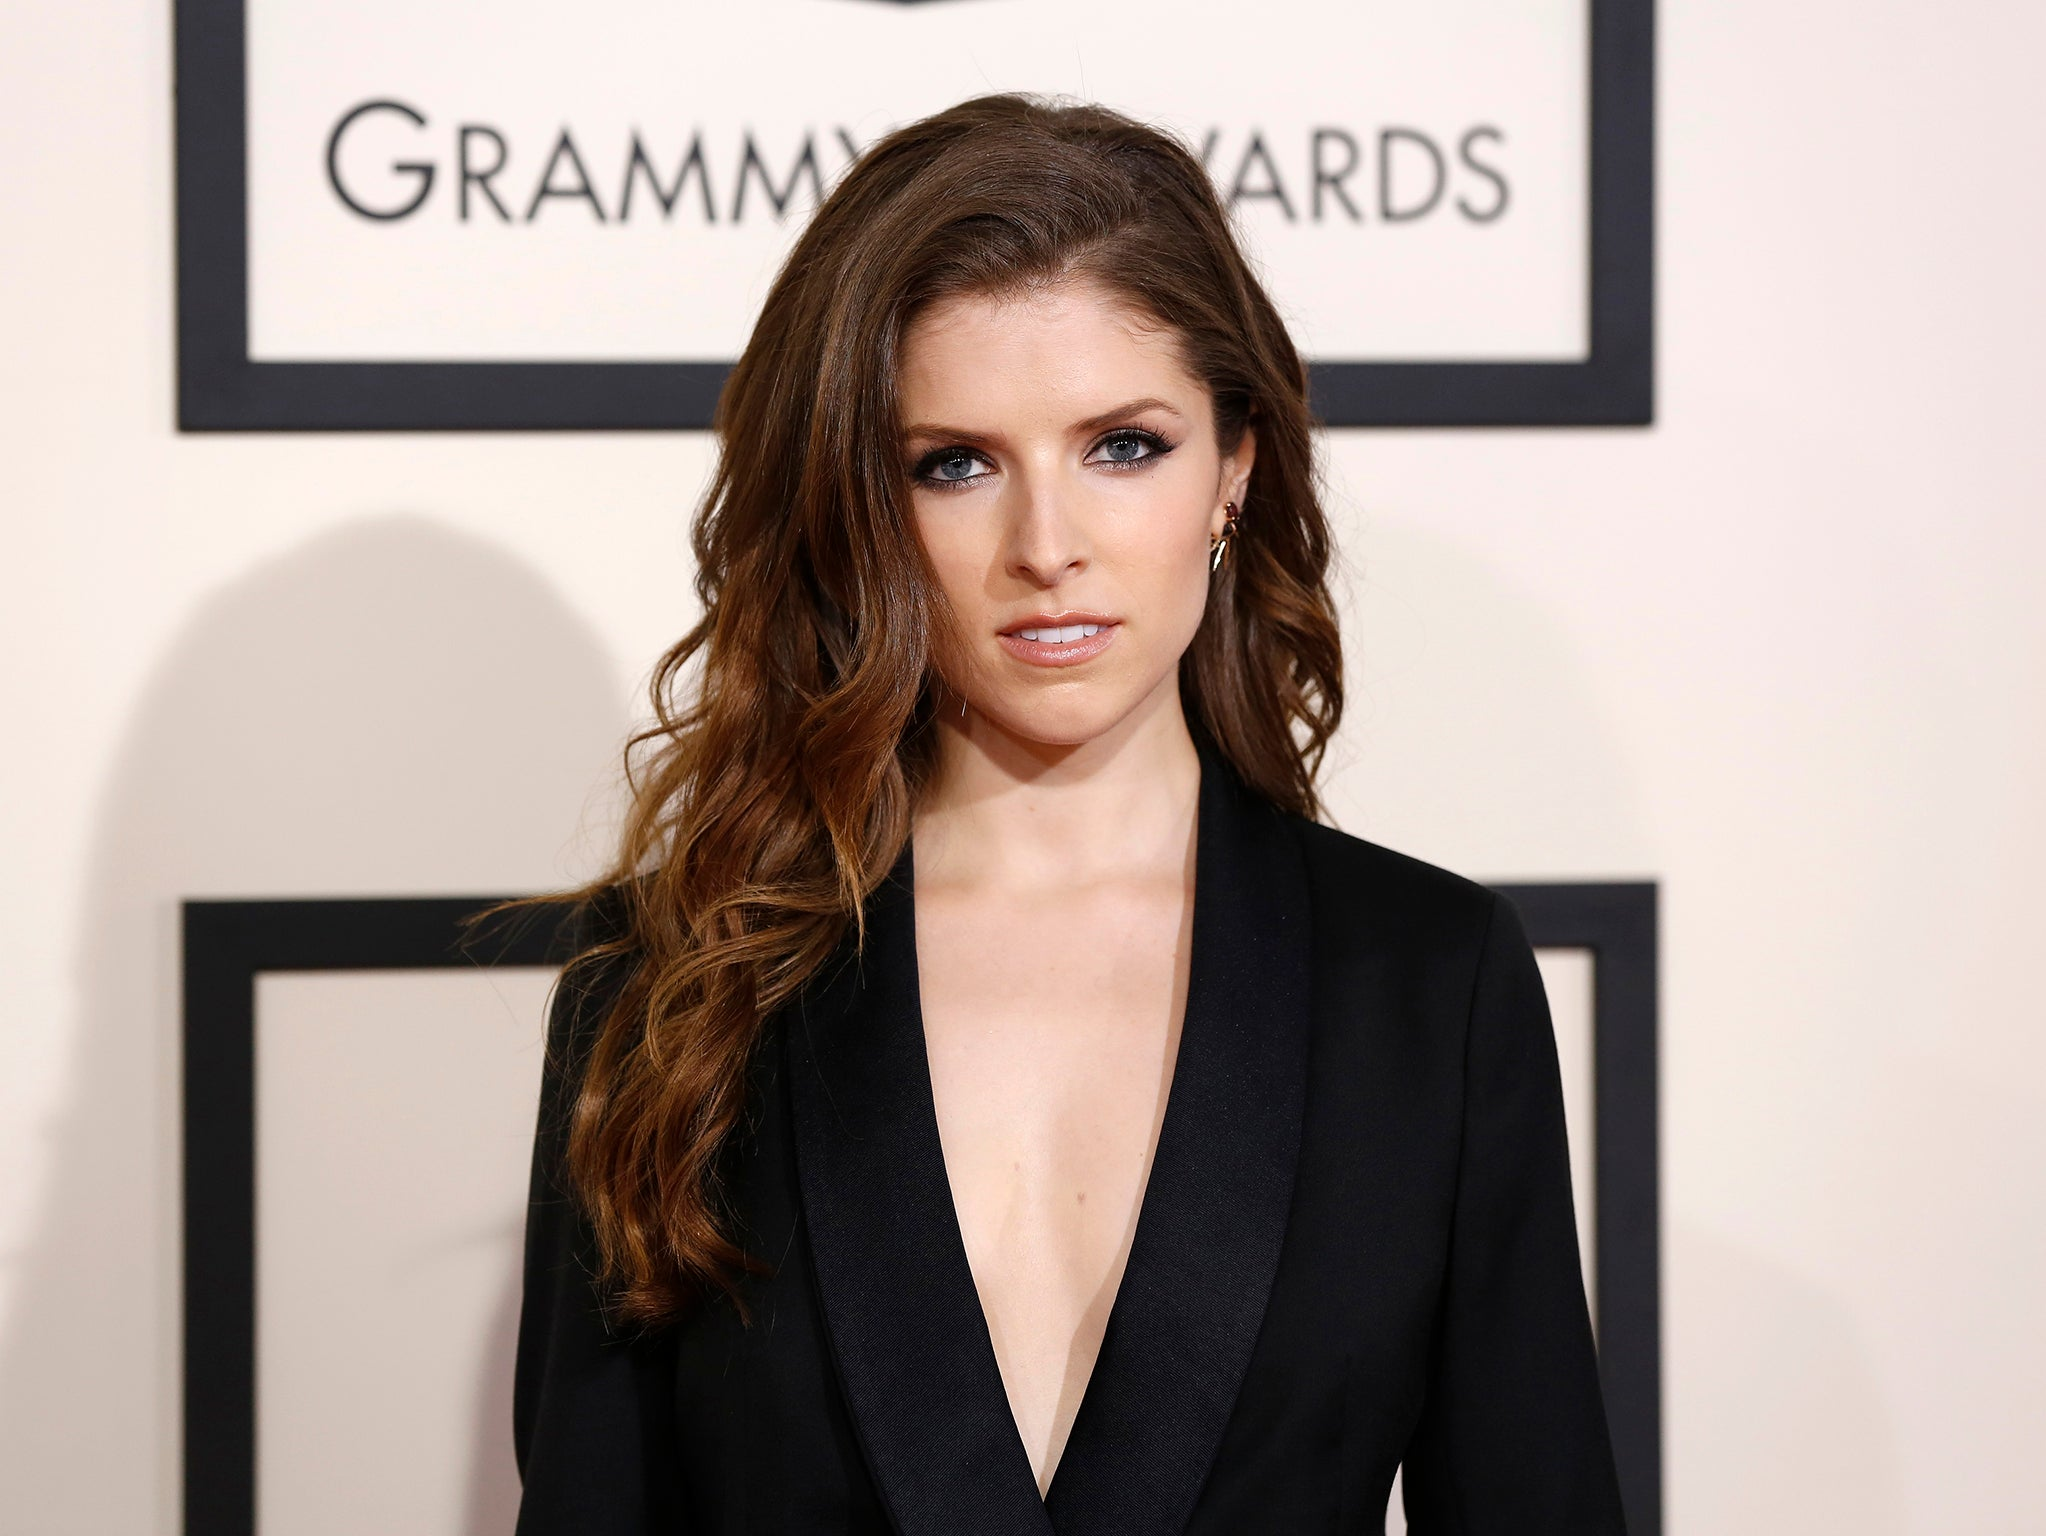 Anna Kendrick Resting Bitch Angry Woman No Background